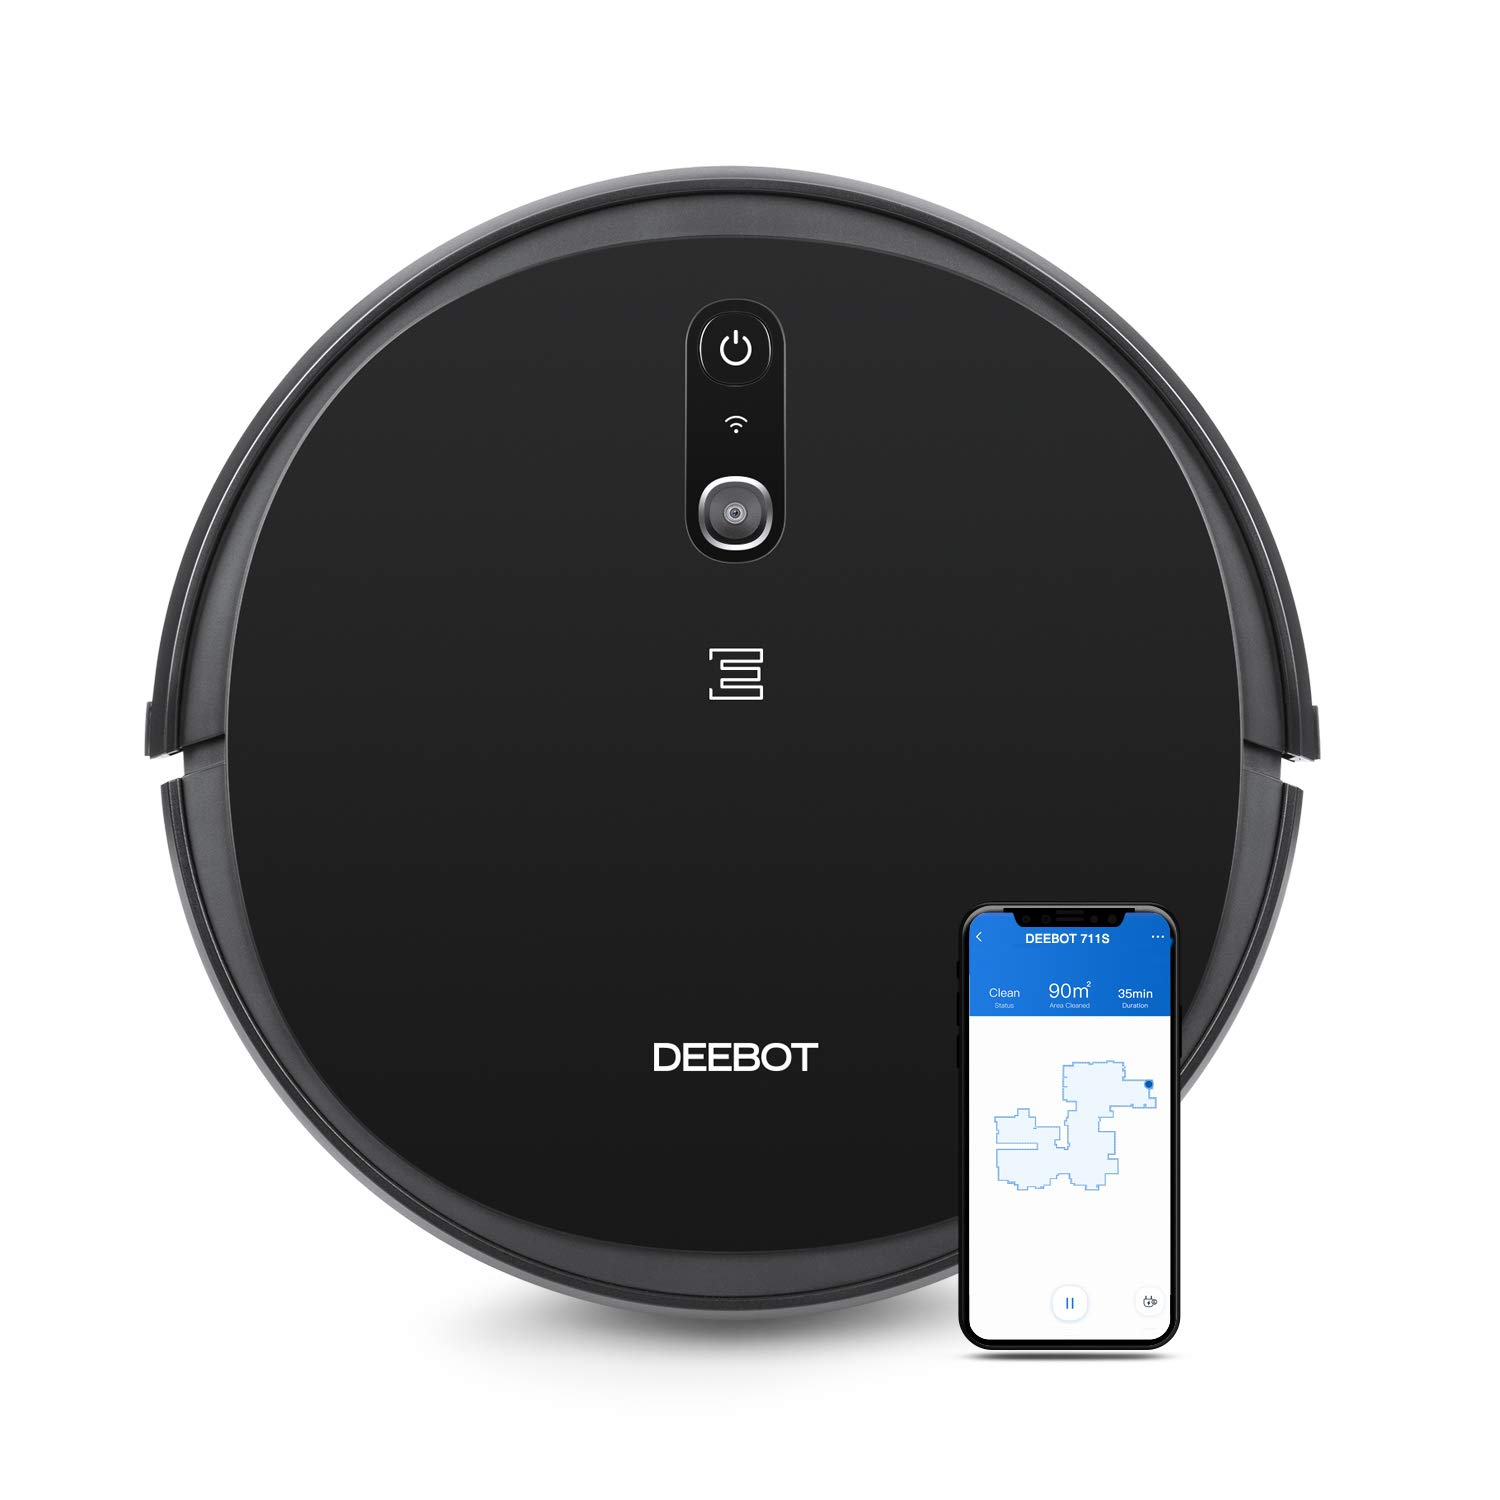 ECOVACS DEEBOT 711S Robotic Vacuum Cleaner with Smart Navi 2.0 Visual Mapping, Max Power Suction, Up to 130 min Runtime, Hard Floors & Carpets, App Controls, Self-Charging, Quiet.